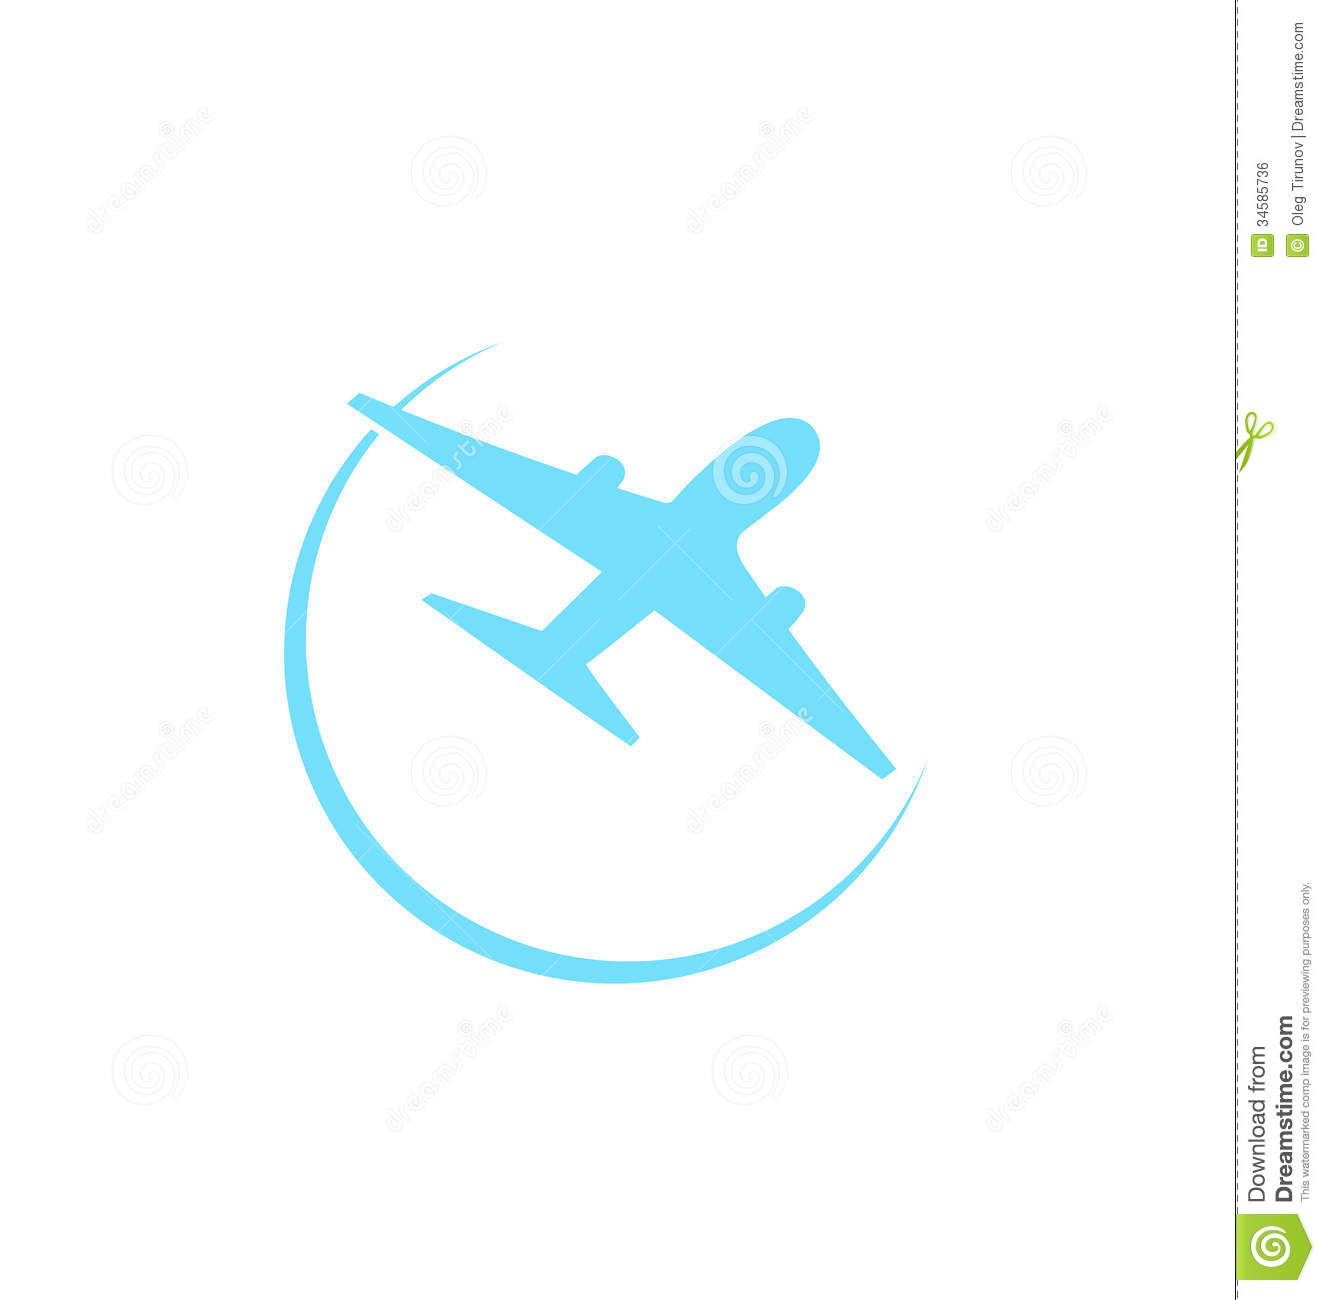 airplane symbol isolated on white background stock vector